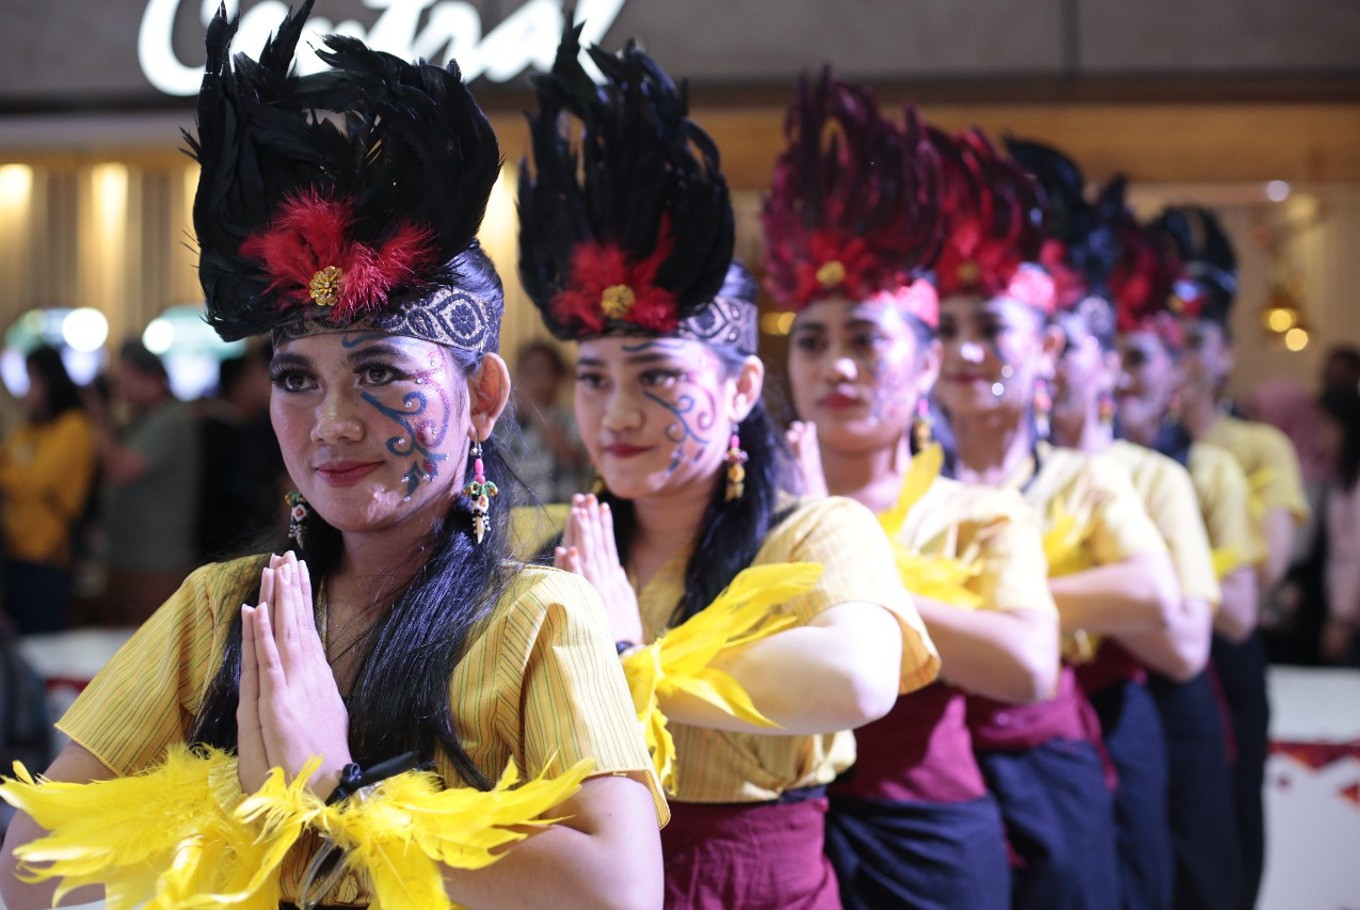 Thousands of dancers expected to join Indonesia Menari 2019